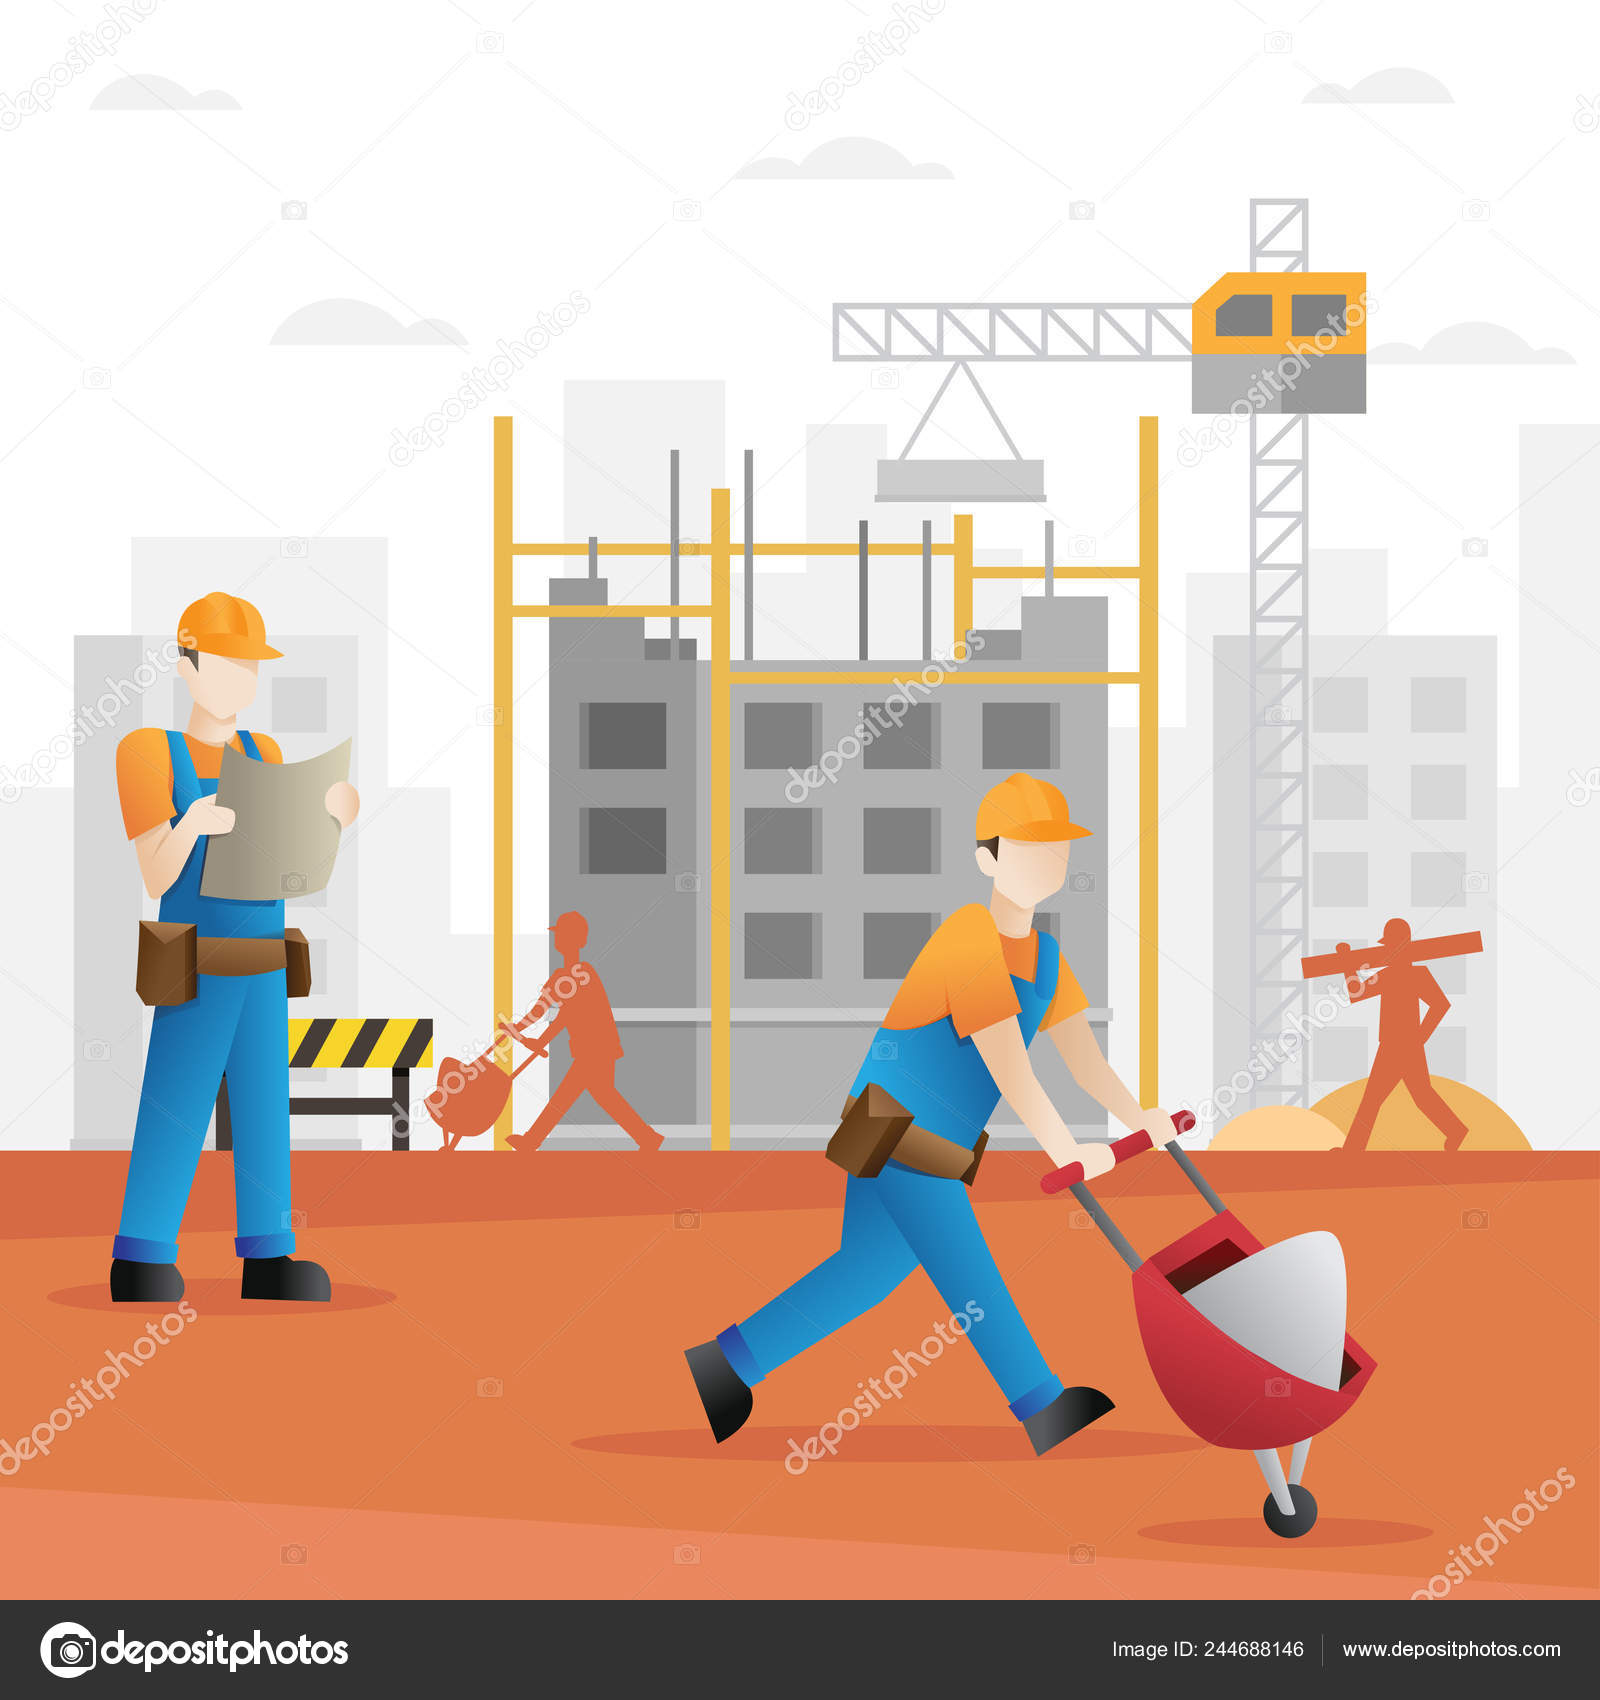 Images Building Construction Cartoon Construction Builder Cartoon Building Construction Industry Cartoon Background Workers Construction Stock Vector C Irfanfirdaus19 Yahoo Com 244688146